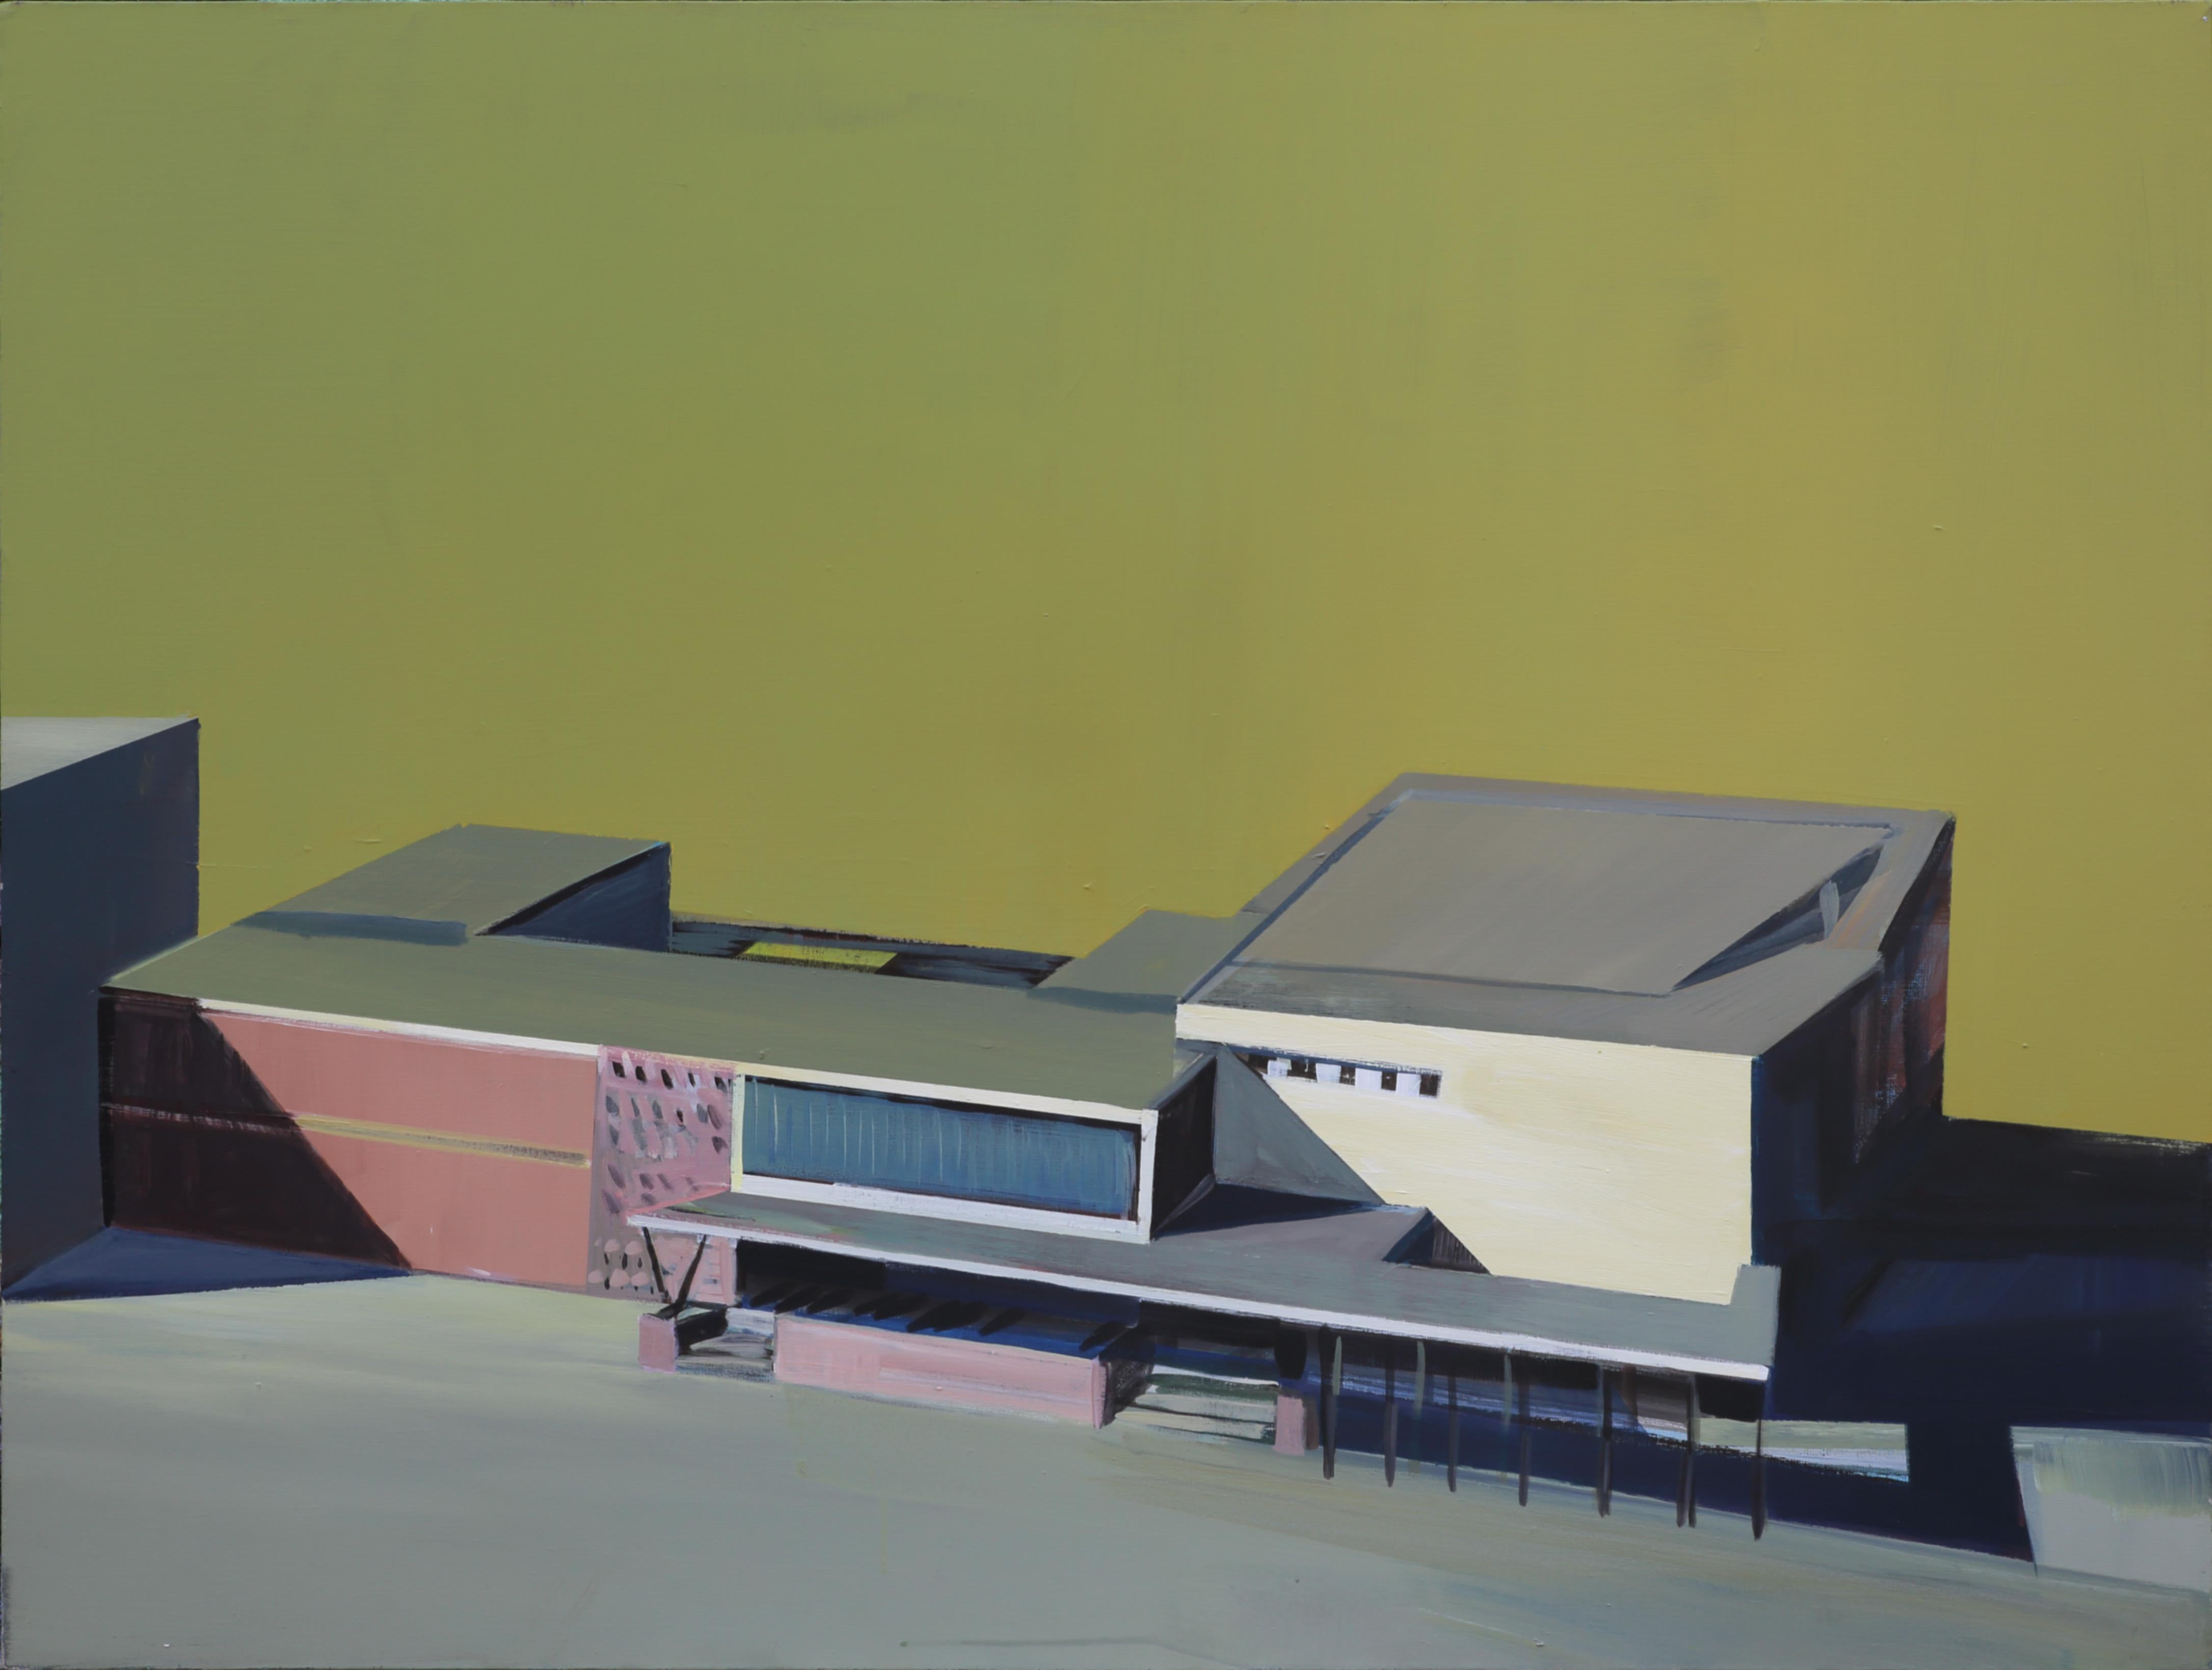 School - Modern Architectural Painting, Modernism Painting, Architecture Art